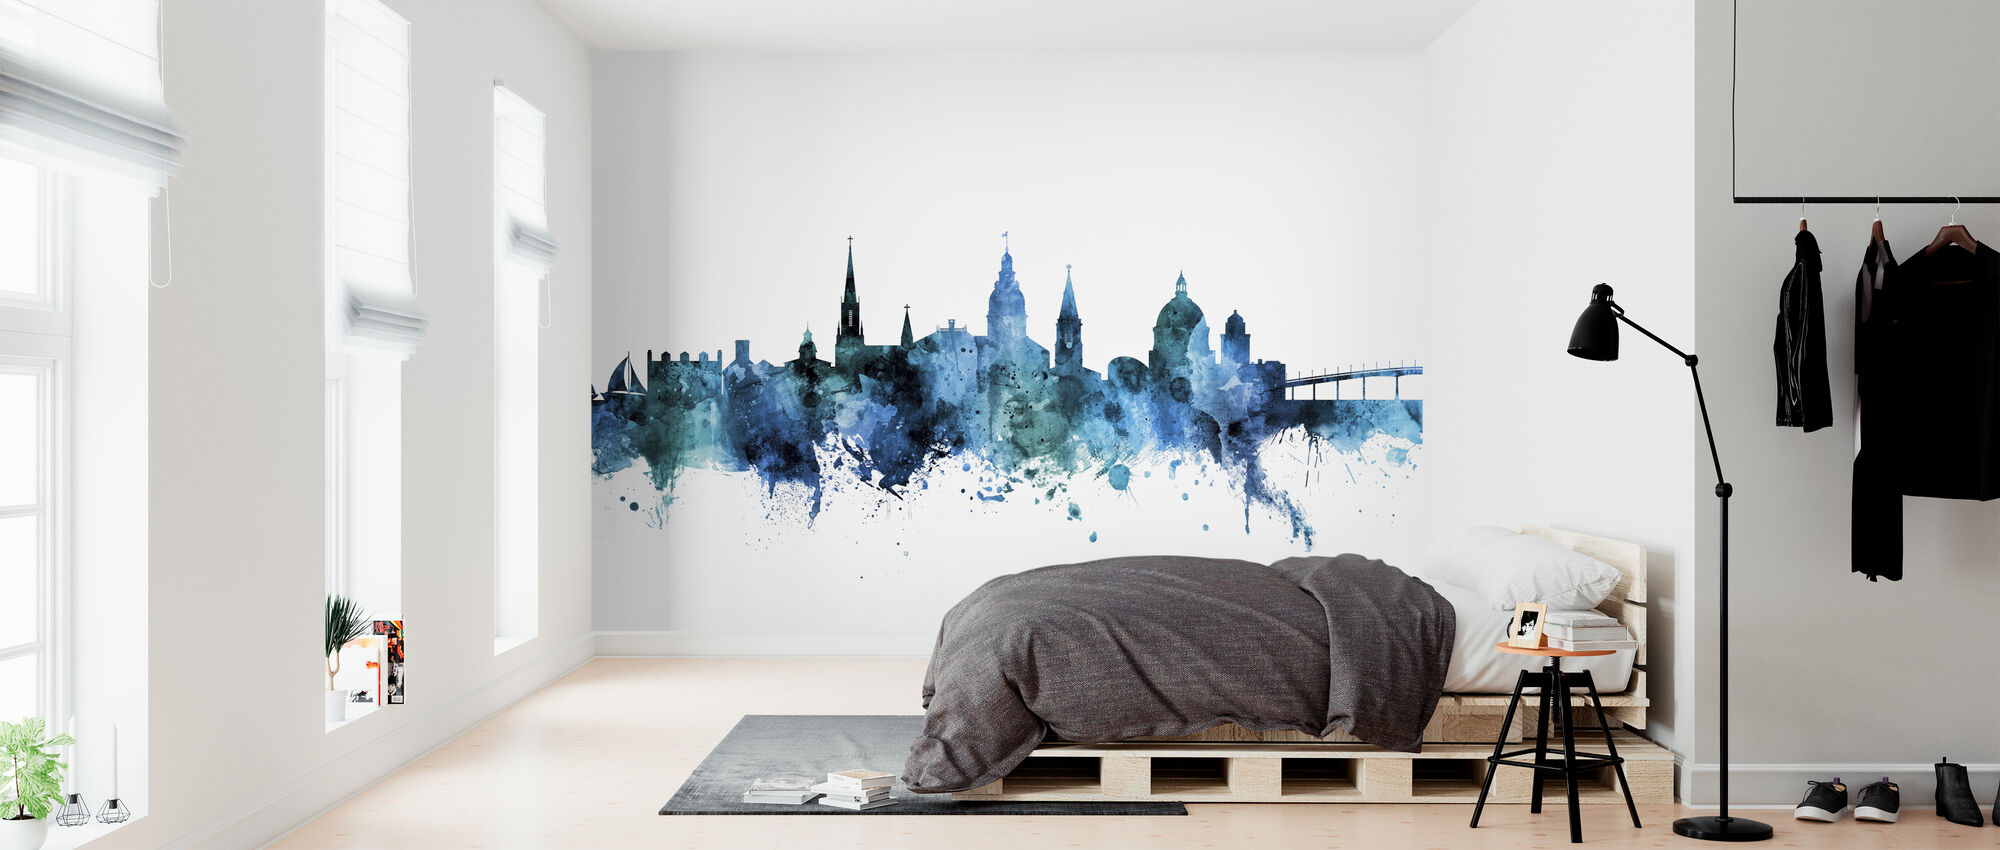 Annapolis Maryland Skyline - Wallpaper - Bedroom